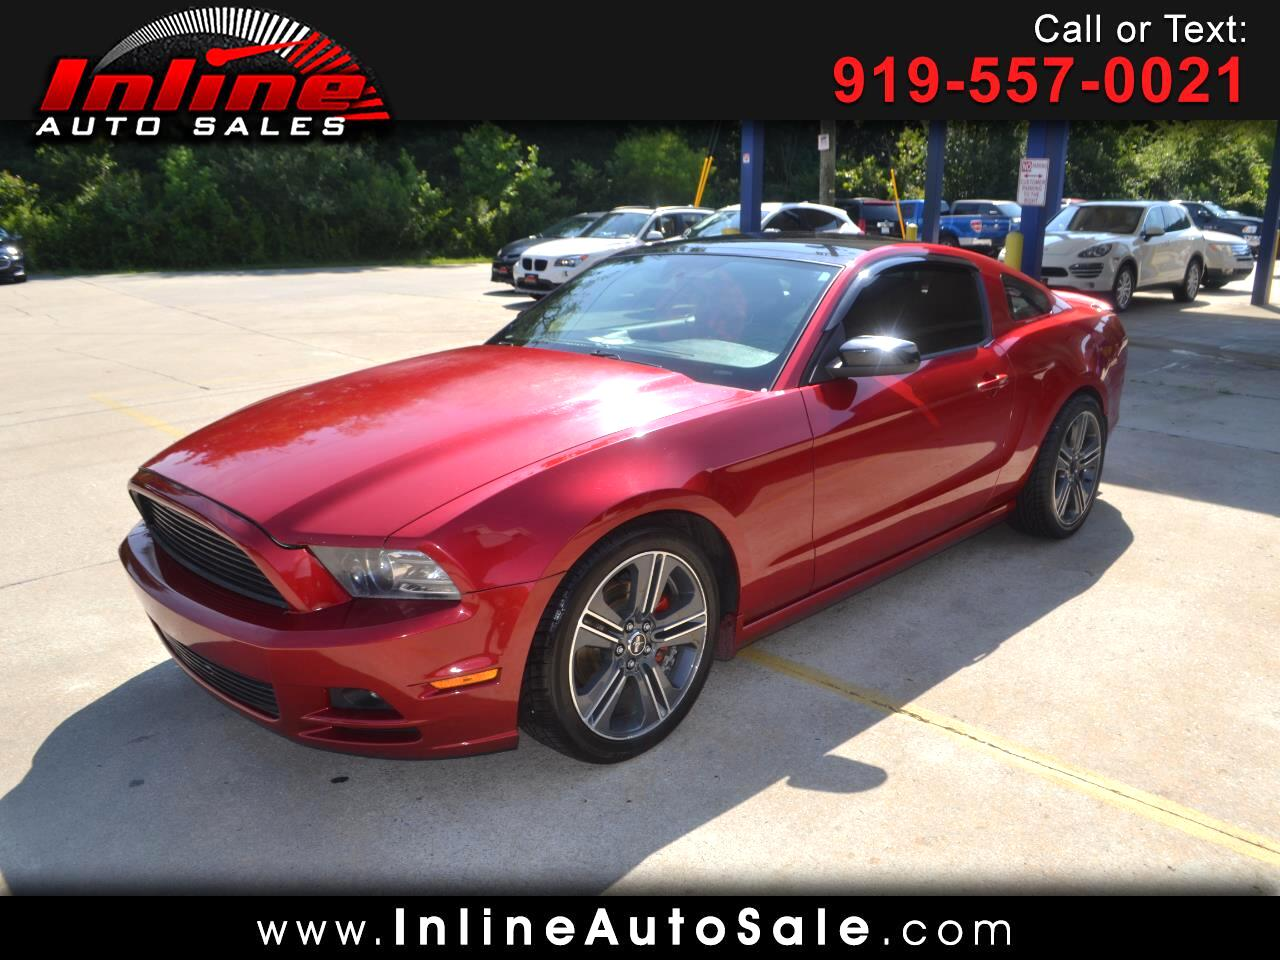 Ford Mustang 2dr Cpe V6 Premium 2013